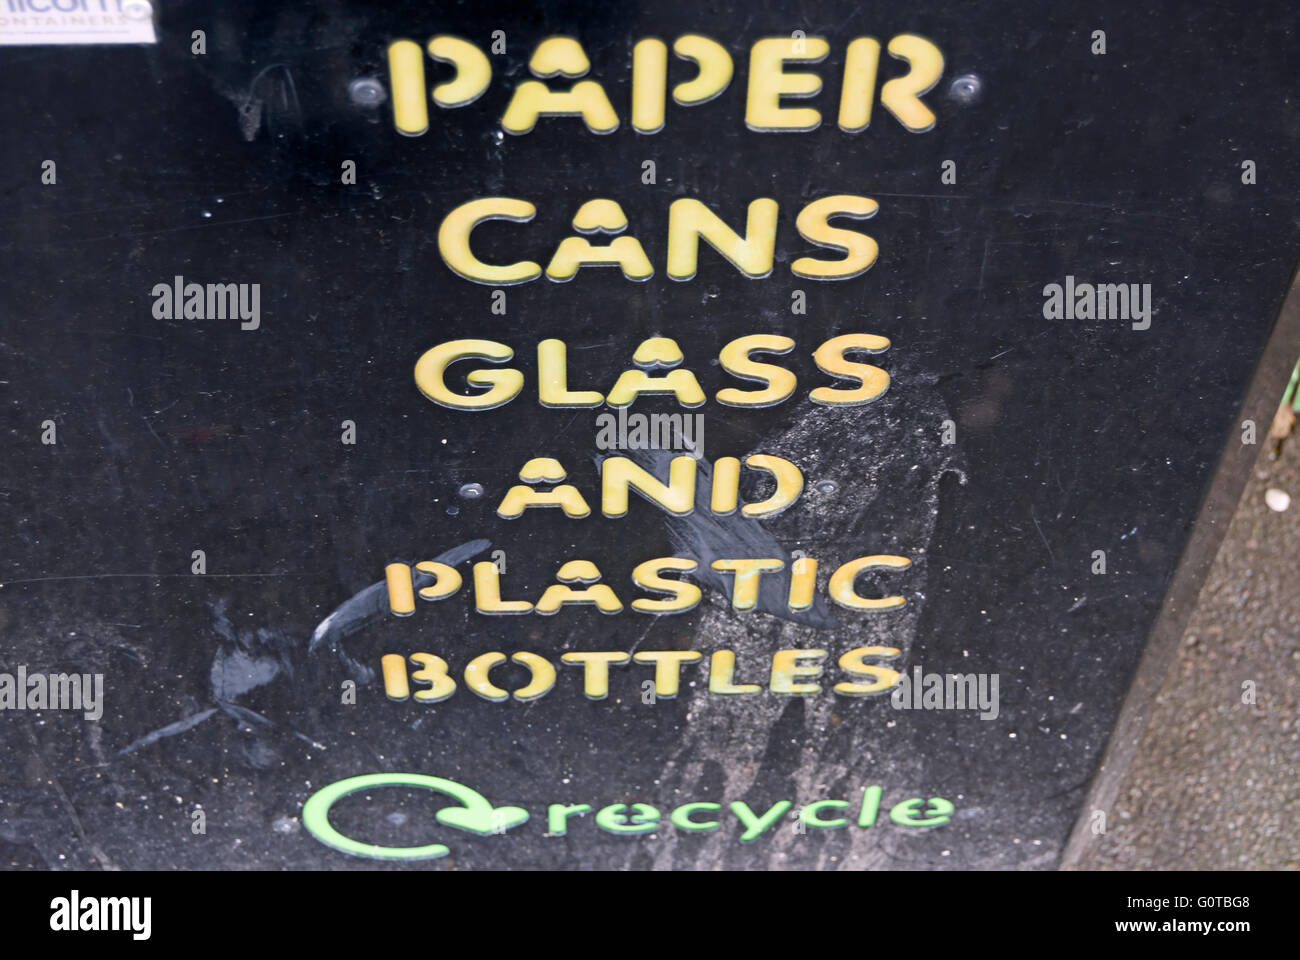 wording on recycle bin in east molesey, surrey, england - Stock Image